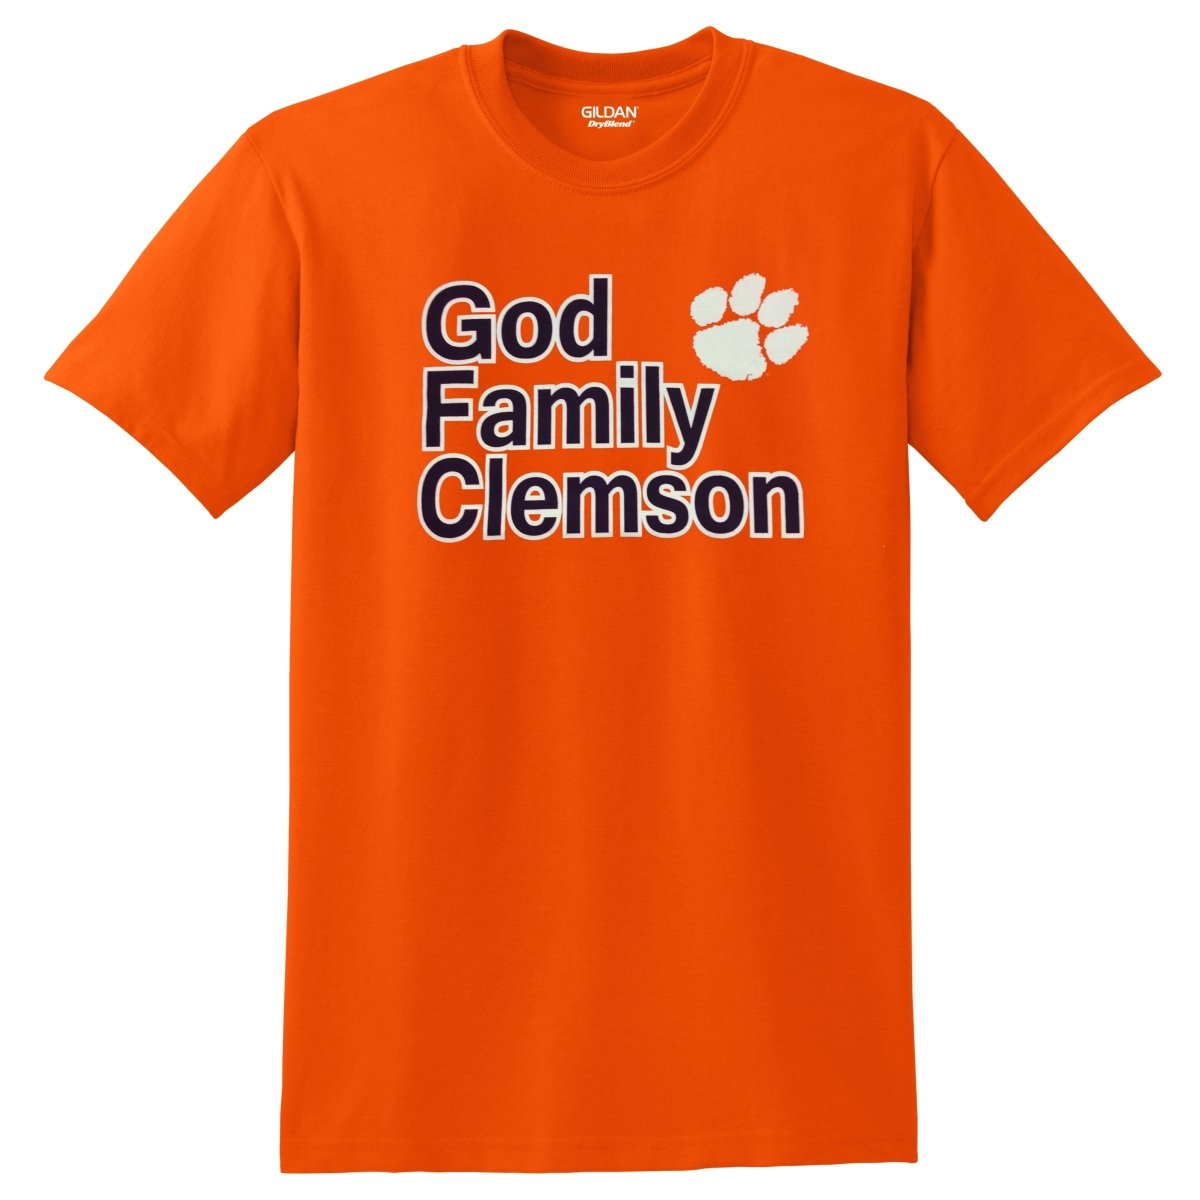 God Family Clemson Tee - Mr. Knickerbocker